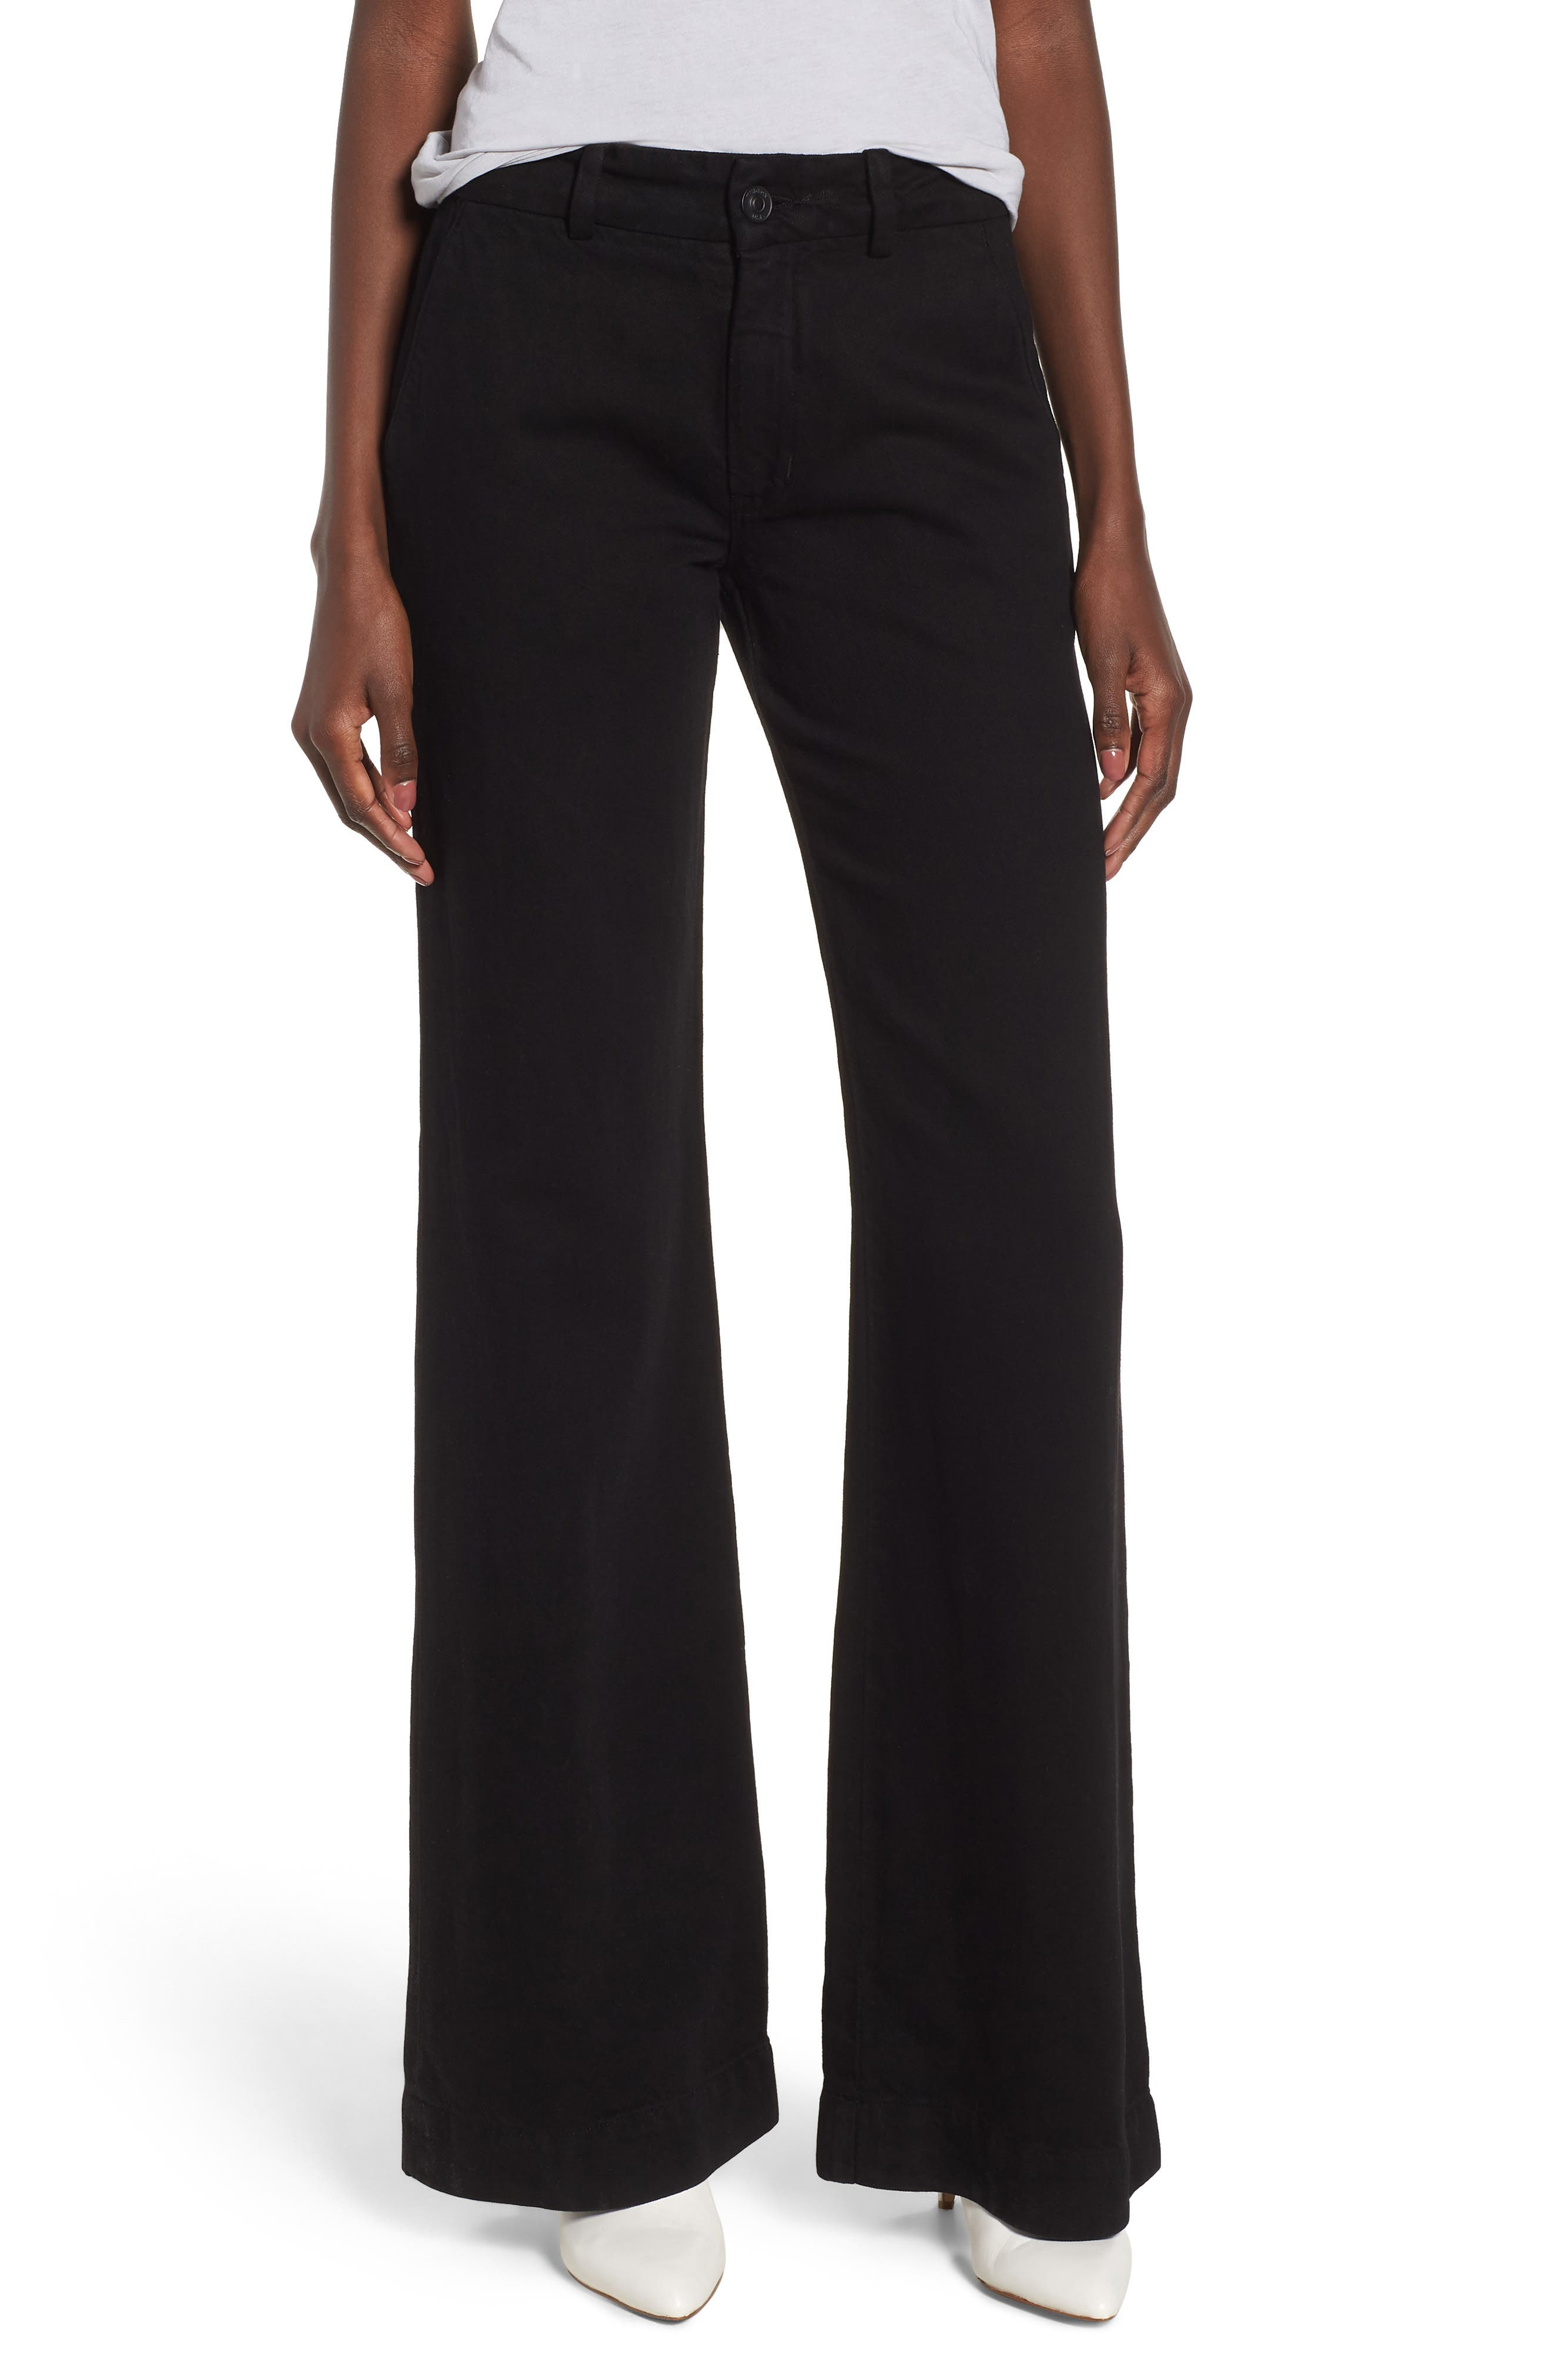 NICO FLARE TROUSER JEANS